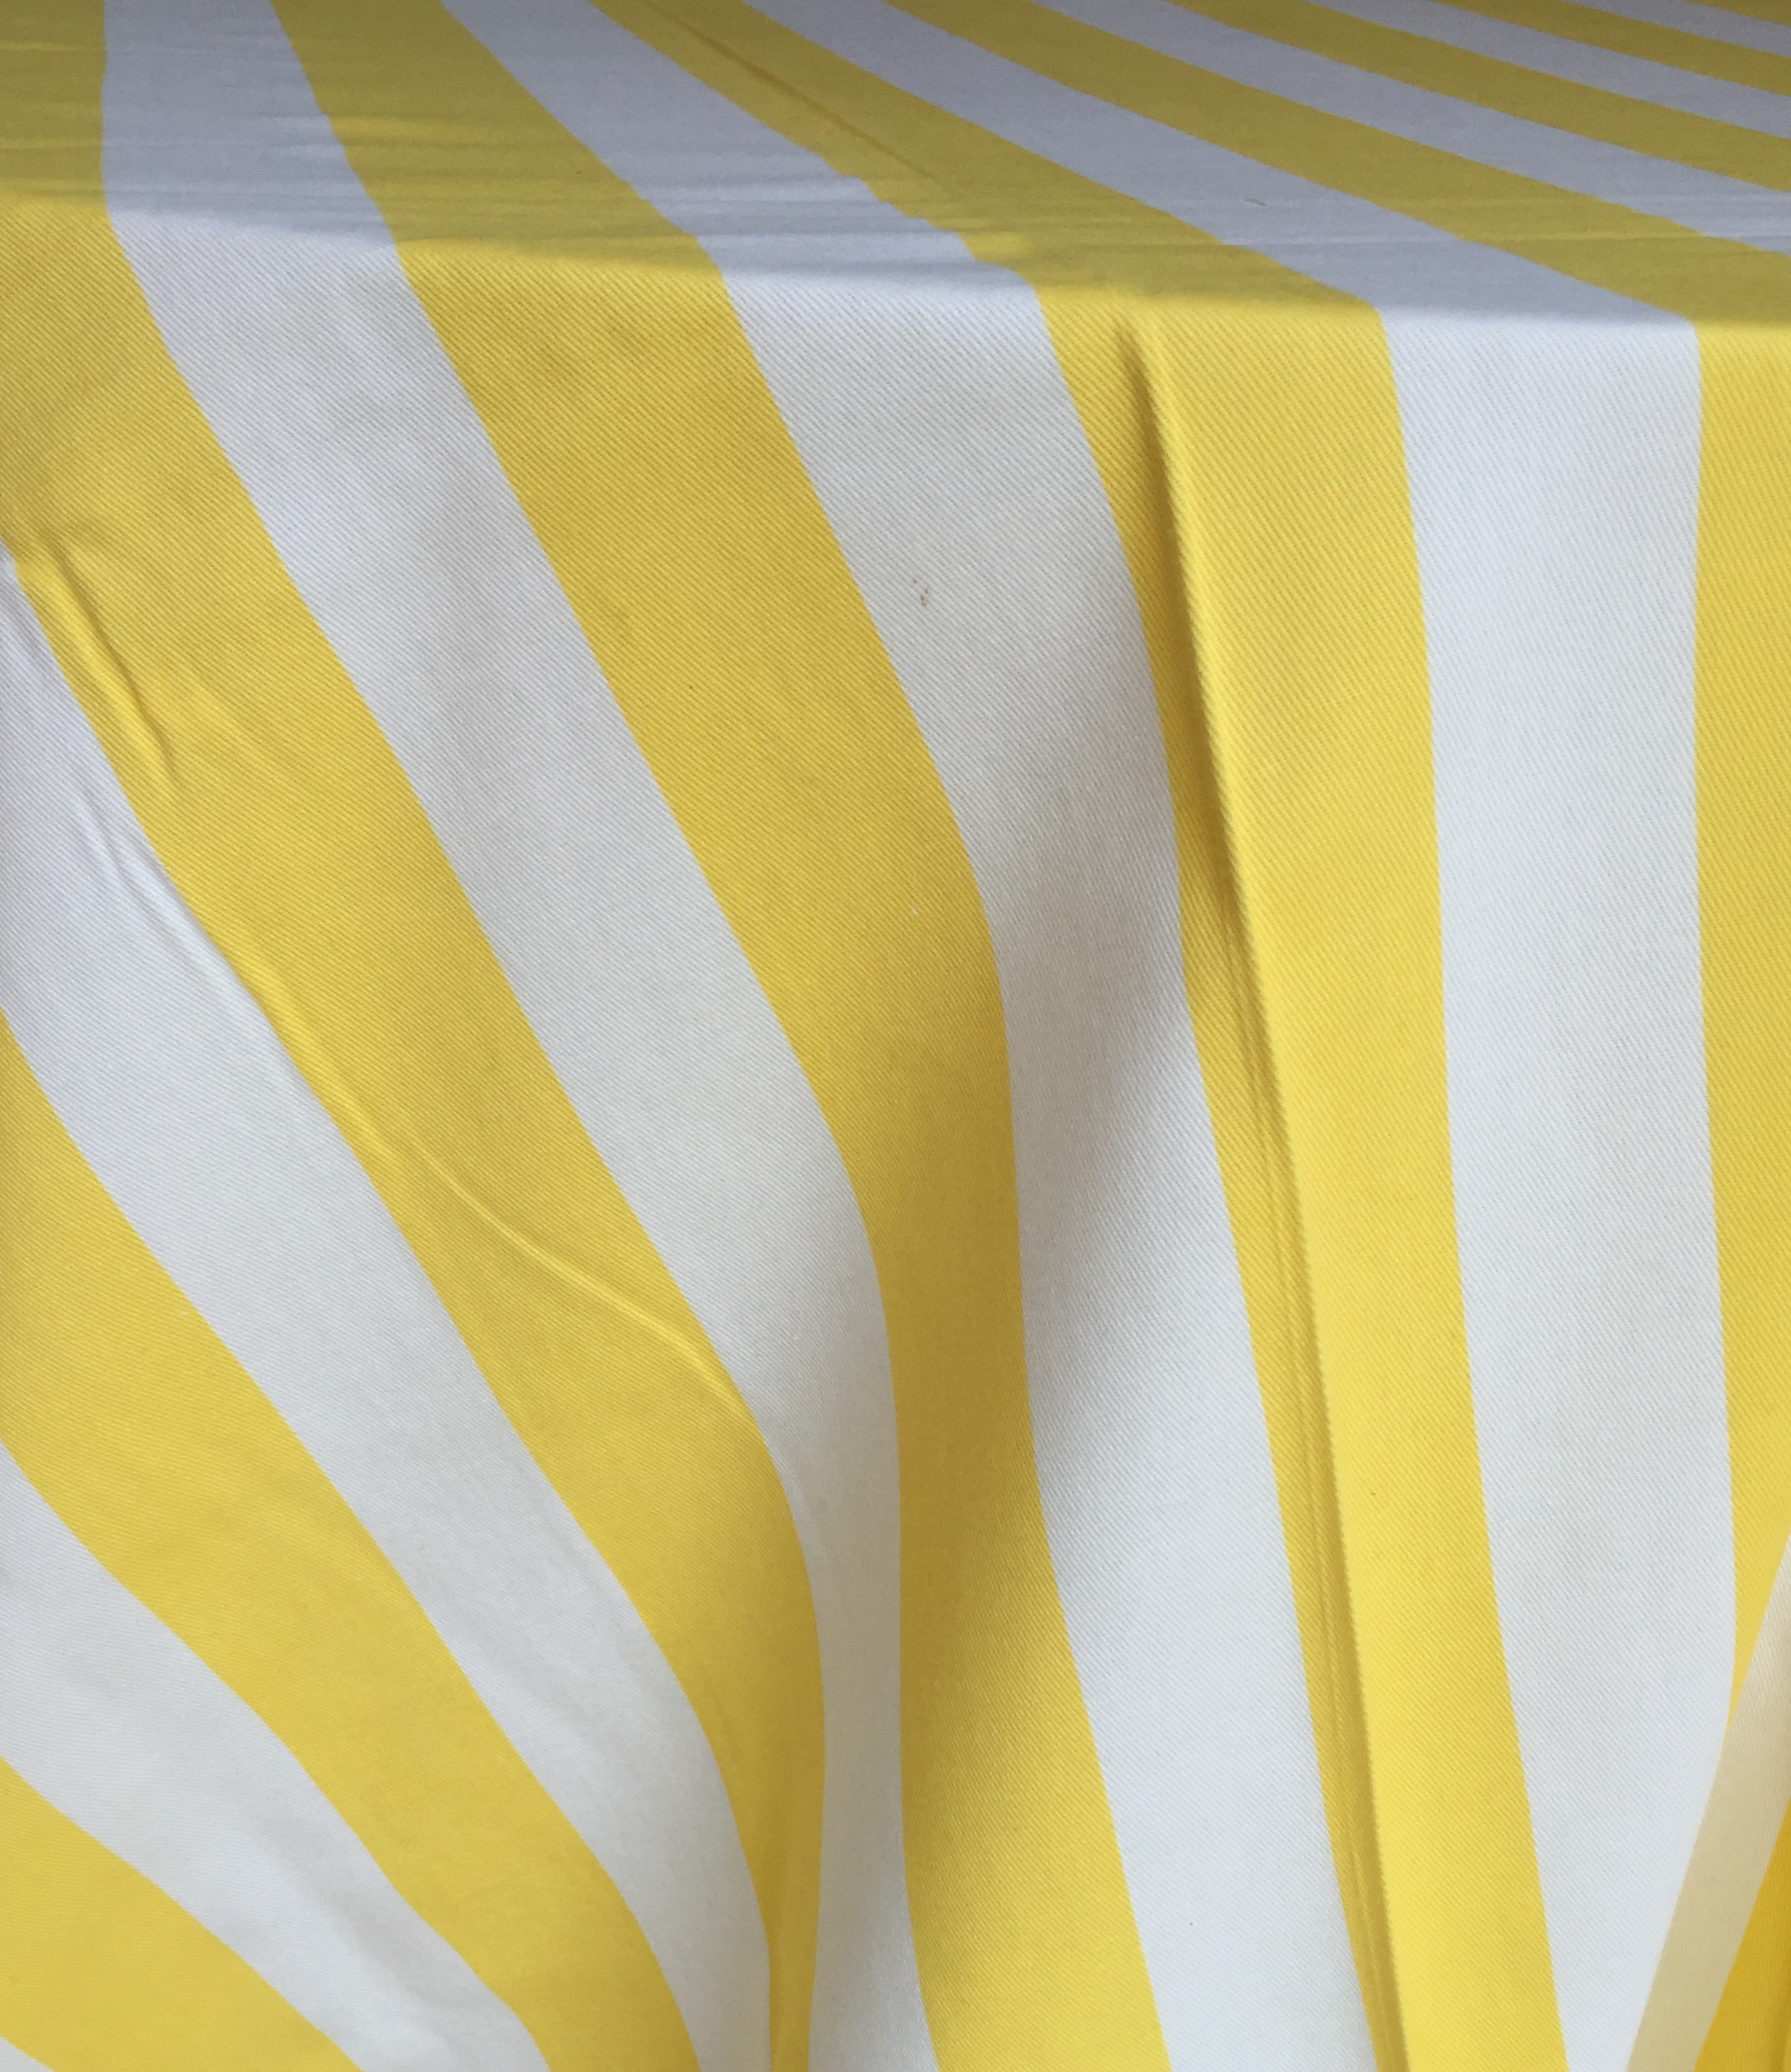 Genial Yellow And White Cotton Stripe Tablecloth